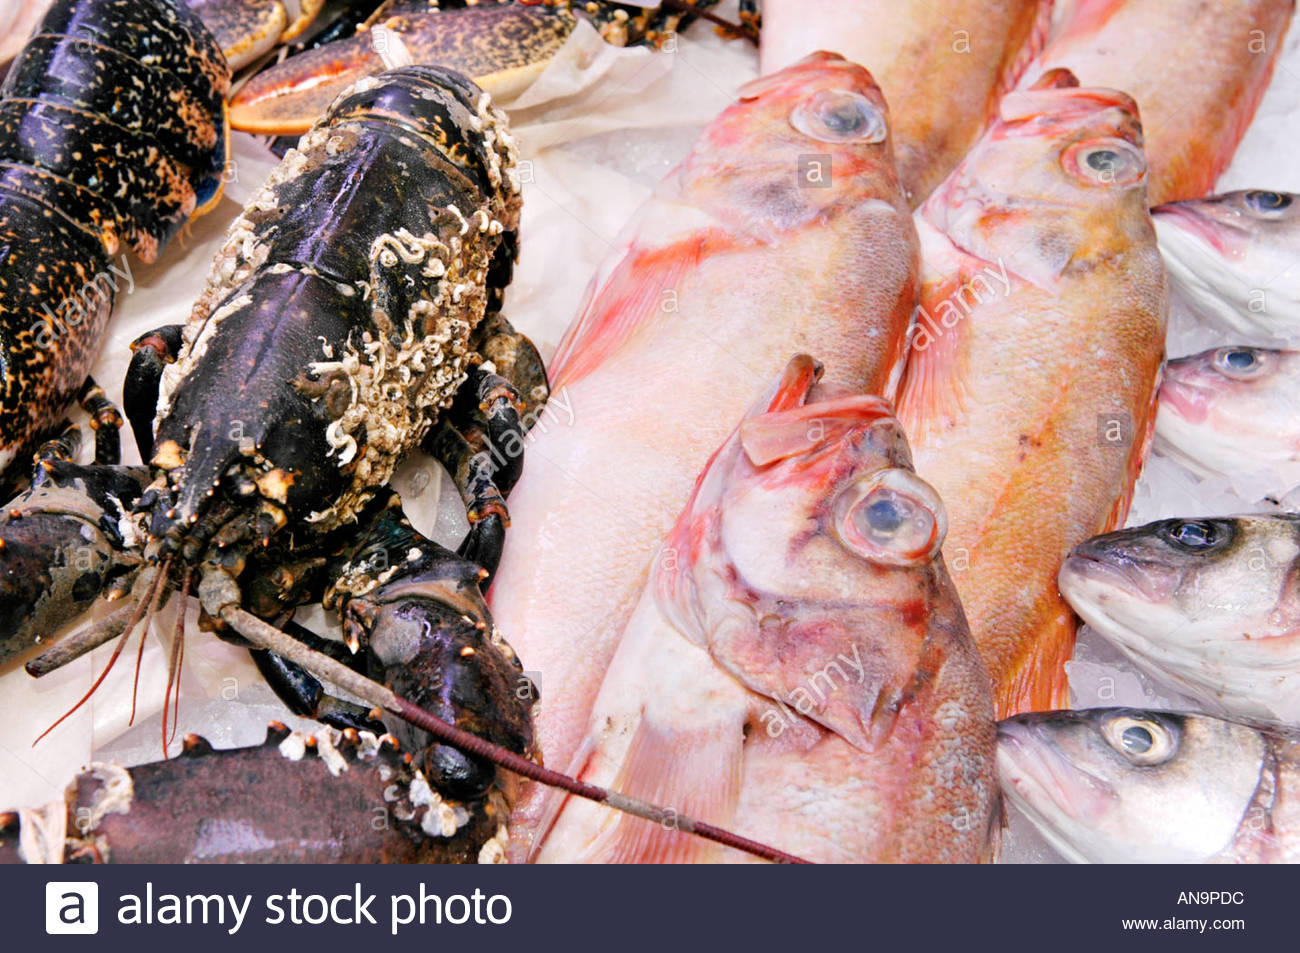 Swansea Market South Wales, Red Gurnard, live lobster and sea bass for sale on fishmongers ...